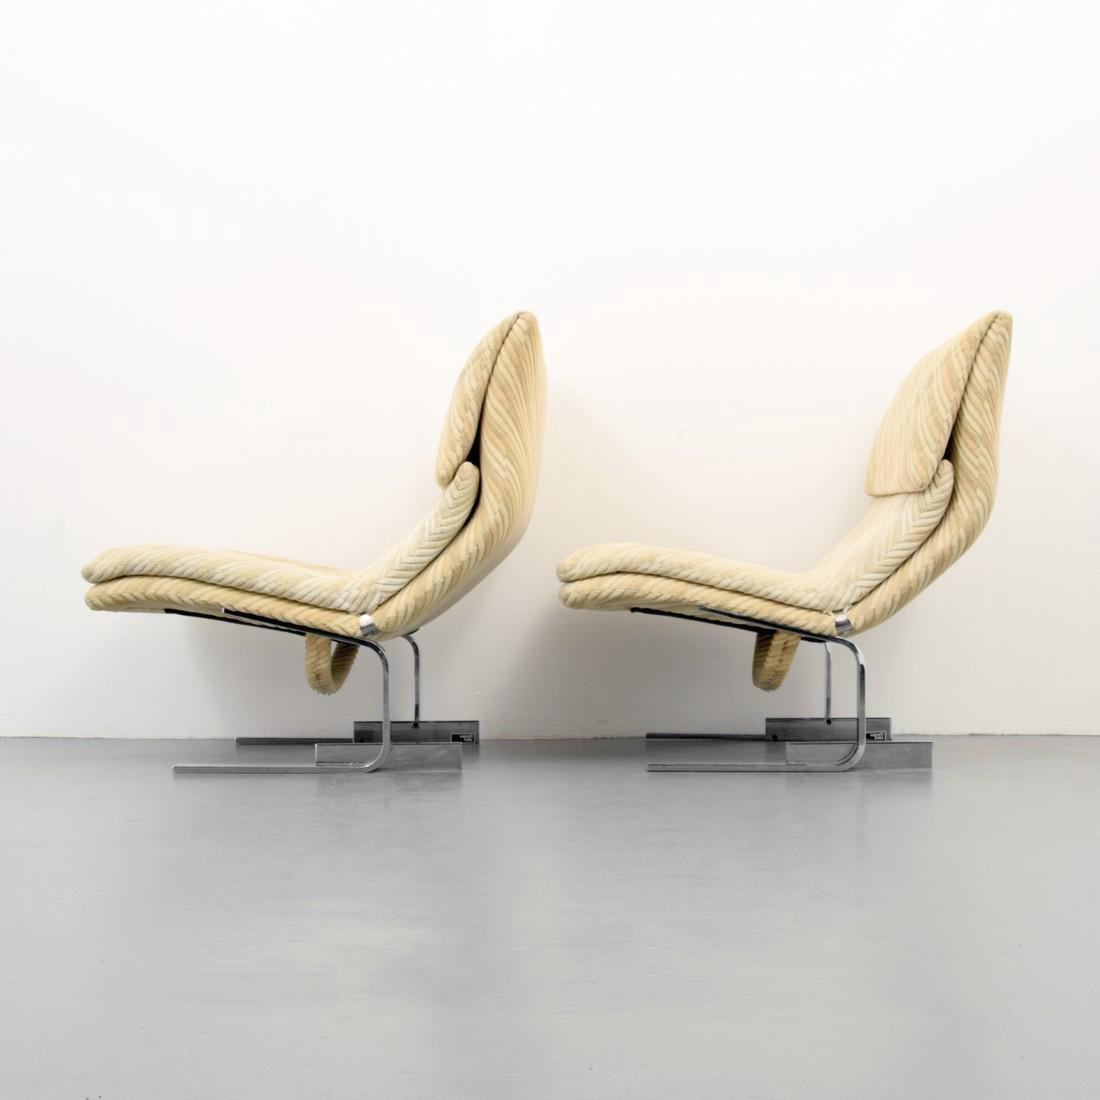 Pair of Giovanni Offredi WAVE / ONDA Lounge Chairs - 2